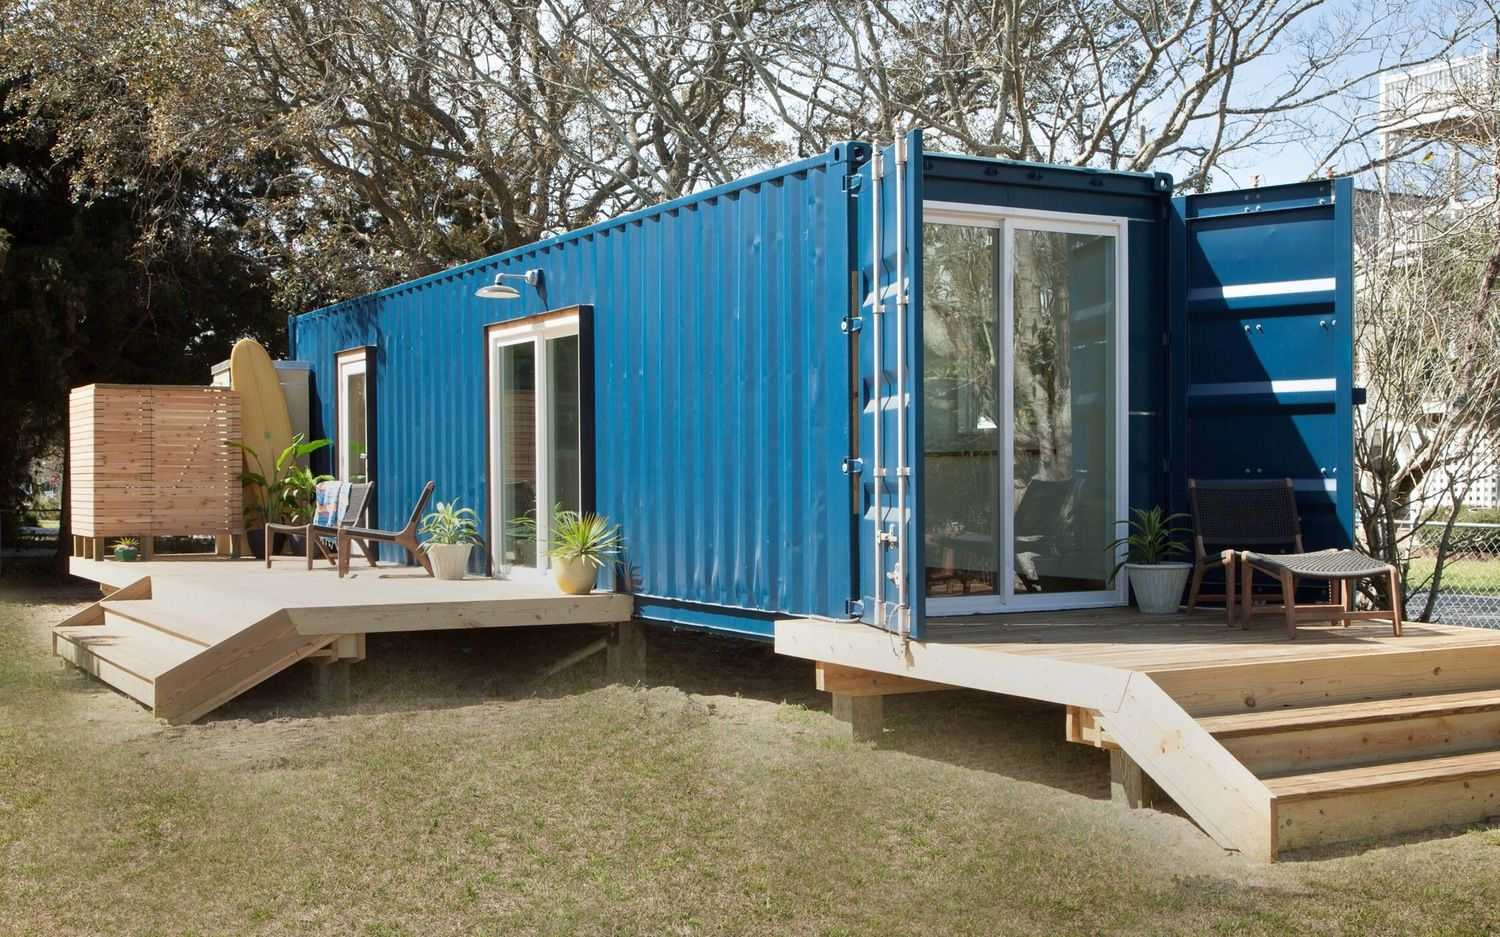 Shipping Container Turned Modern Beach Home Container House Plans Container House Container House Design